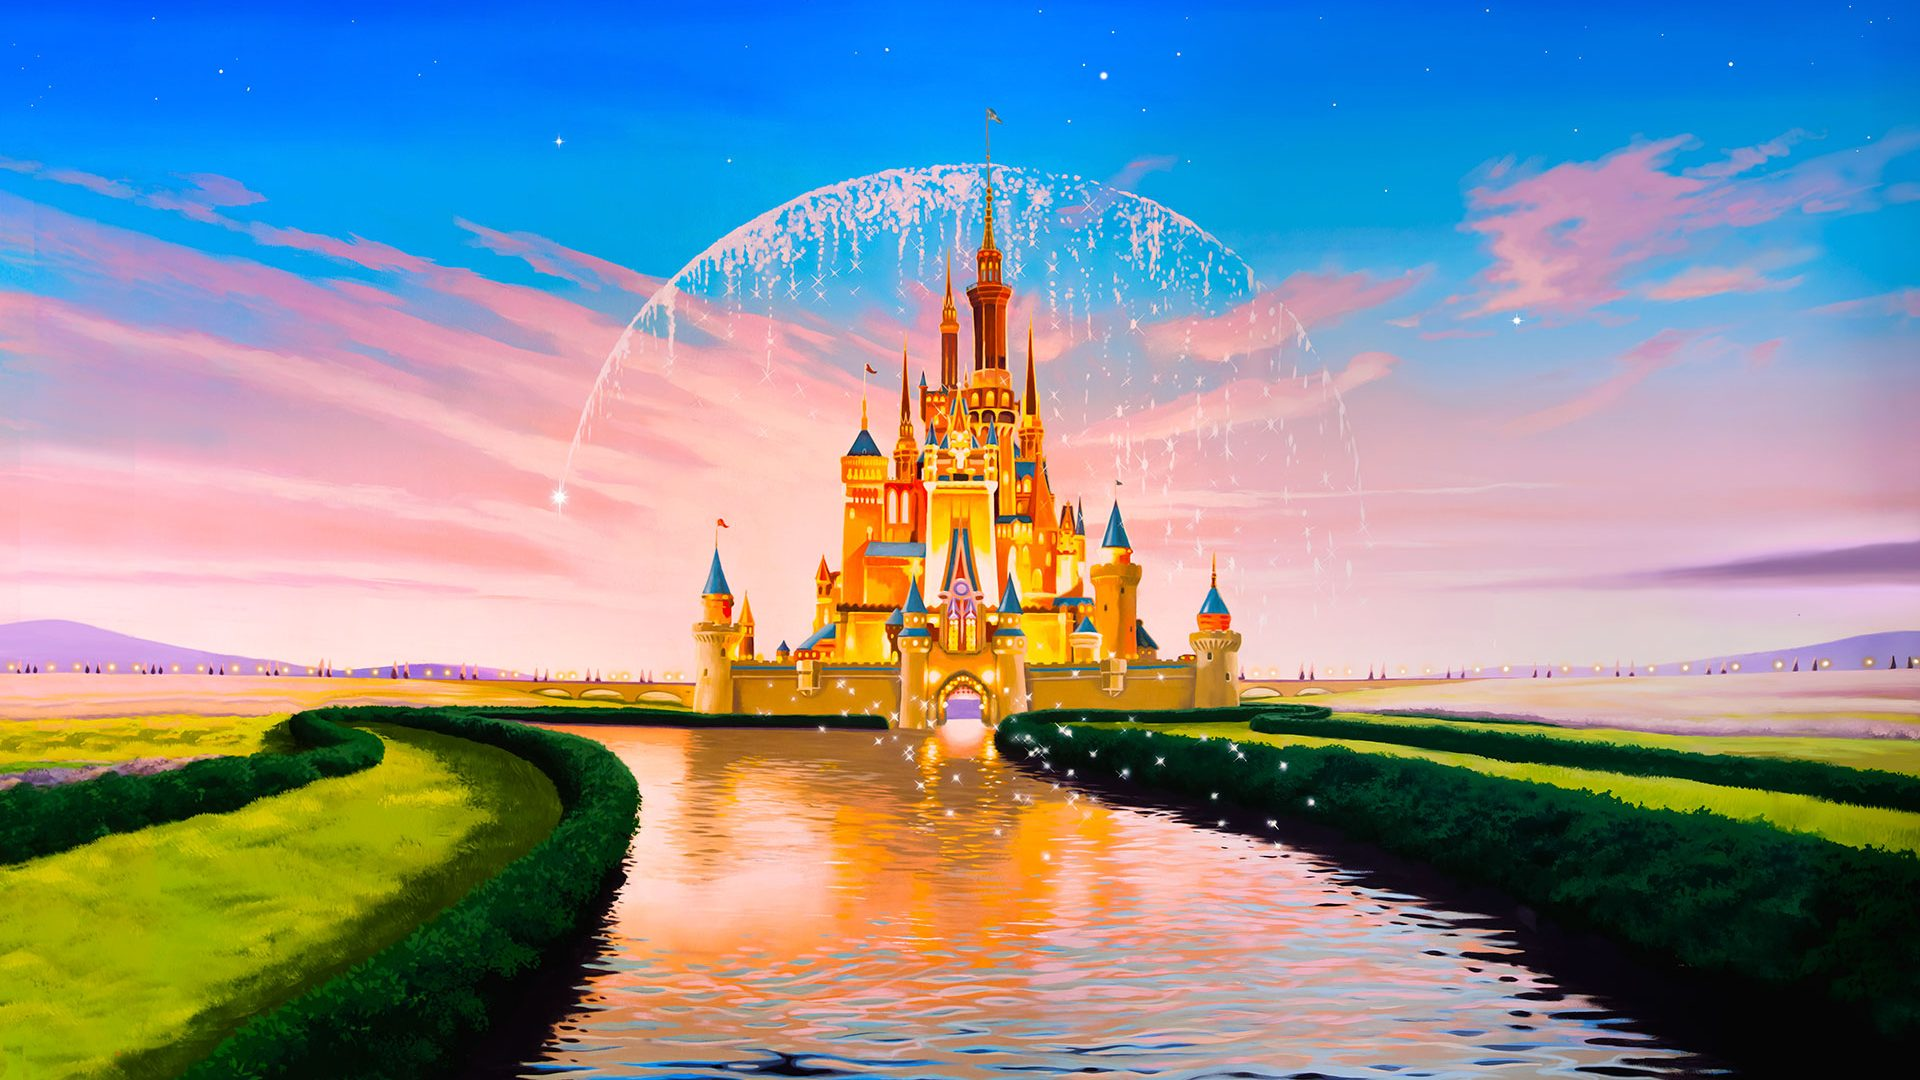 Free Download Disney Castle Backgrounds – Wallpapercraft